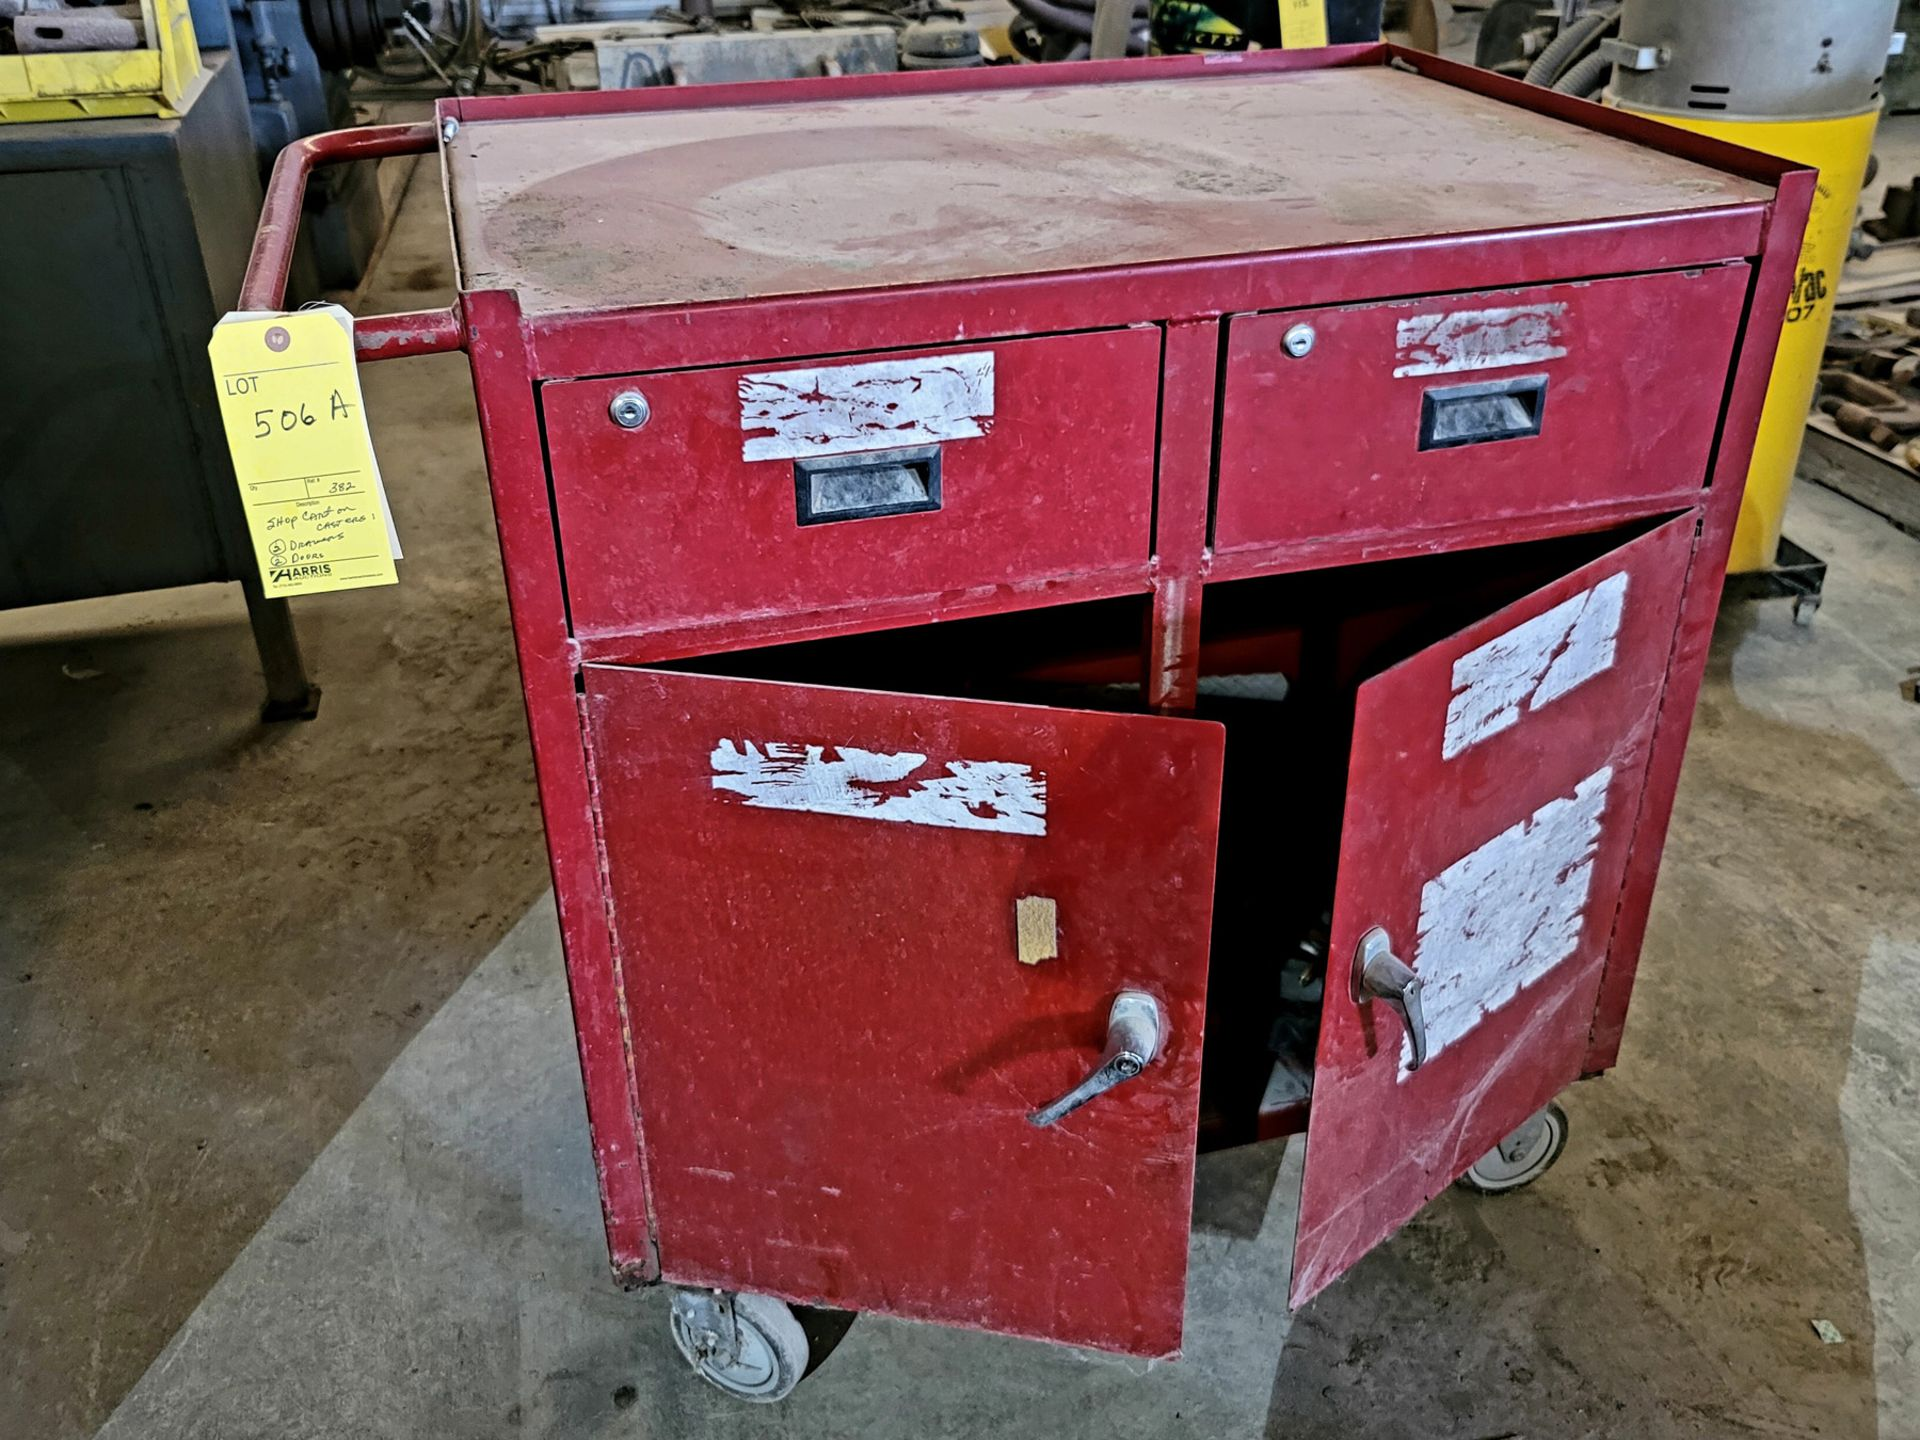 Shop Cart on Casters, 2 Drawers, 2-Doors, with Contents